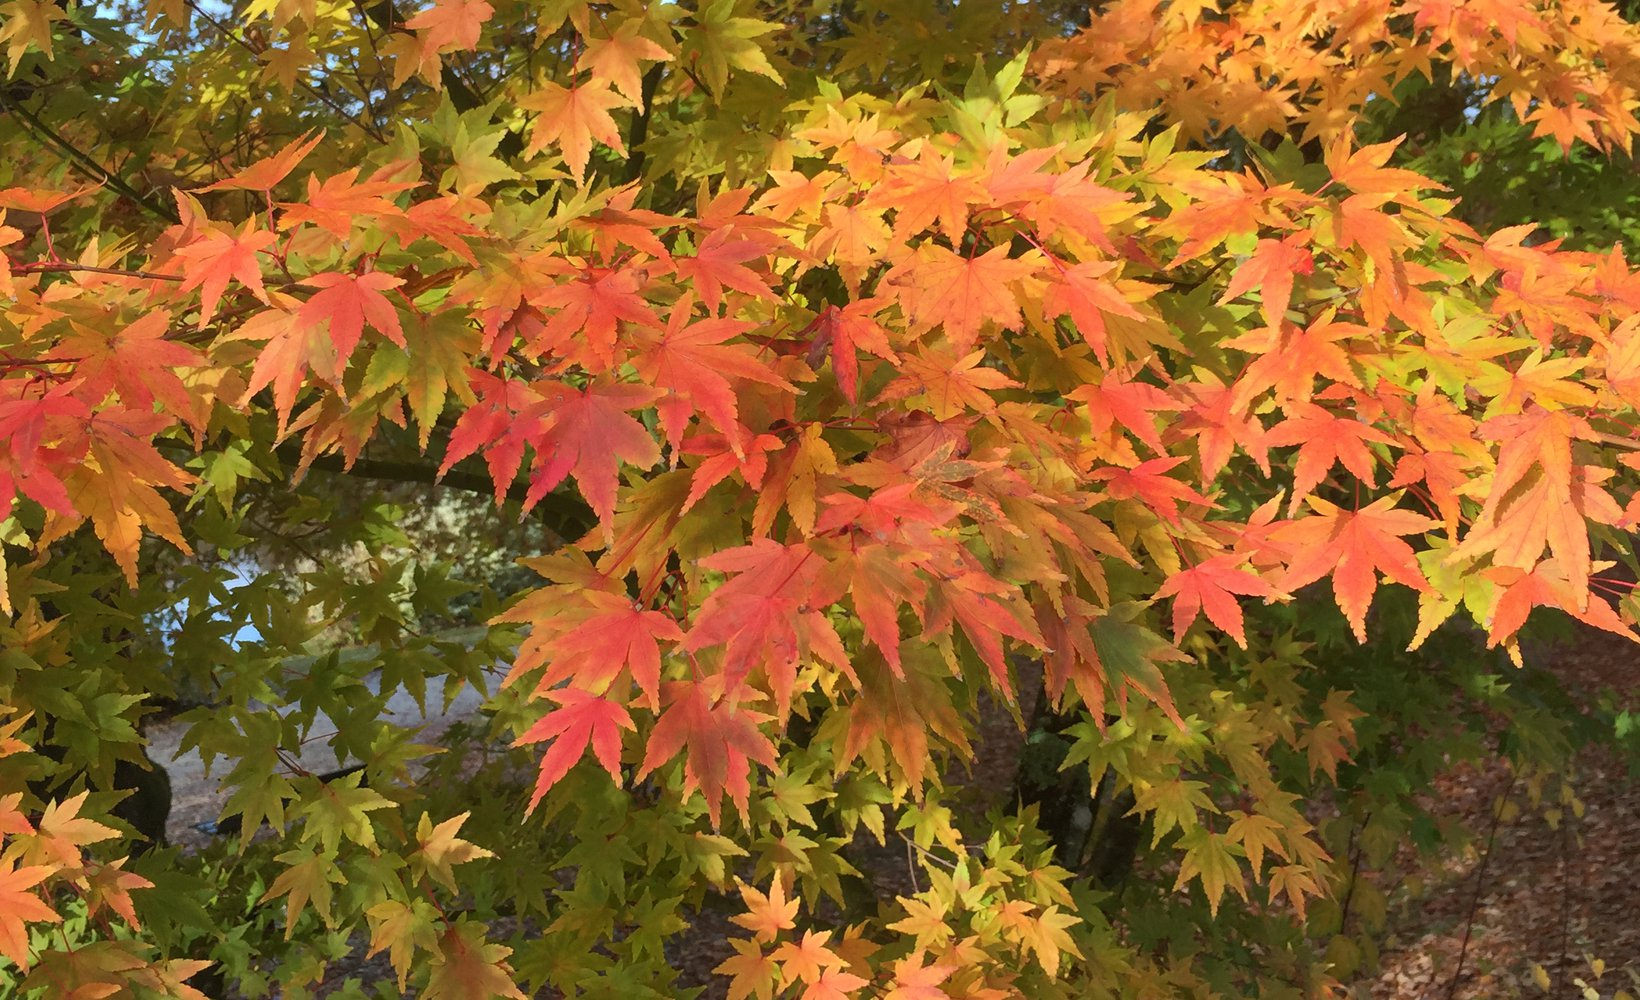 A photograph depicting colourful autumnal leaves.